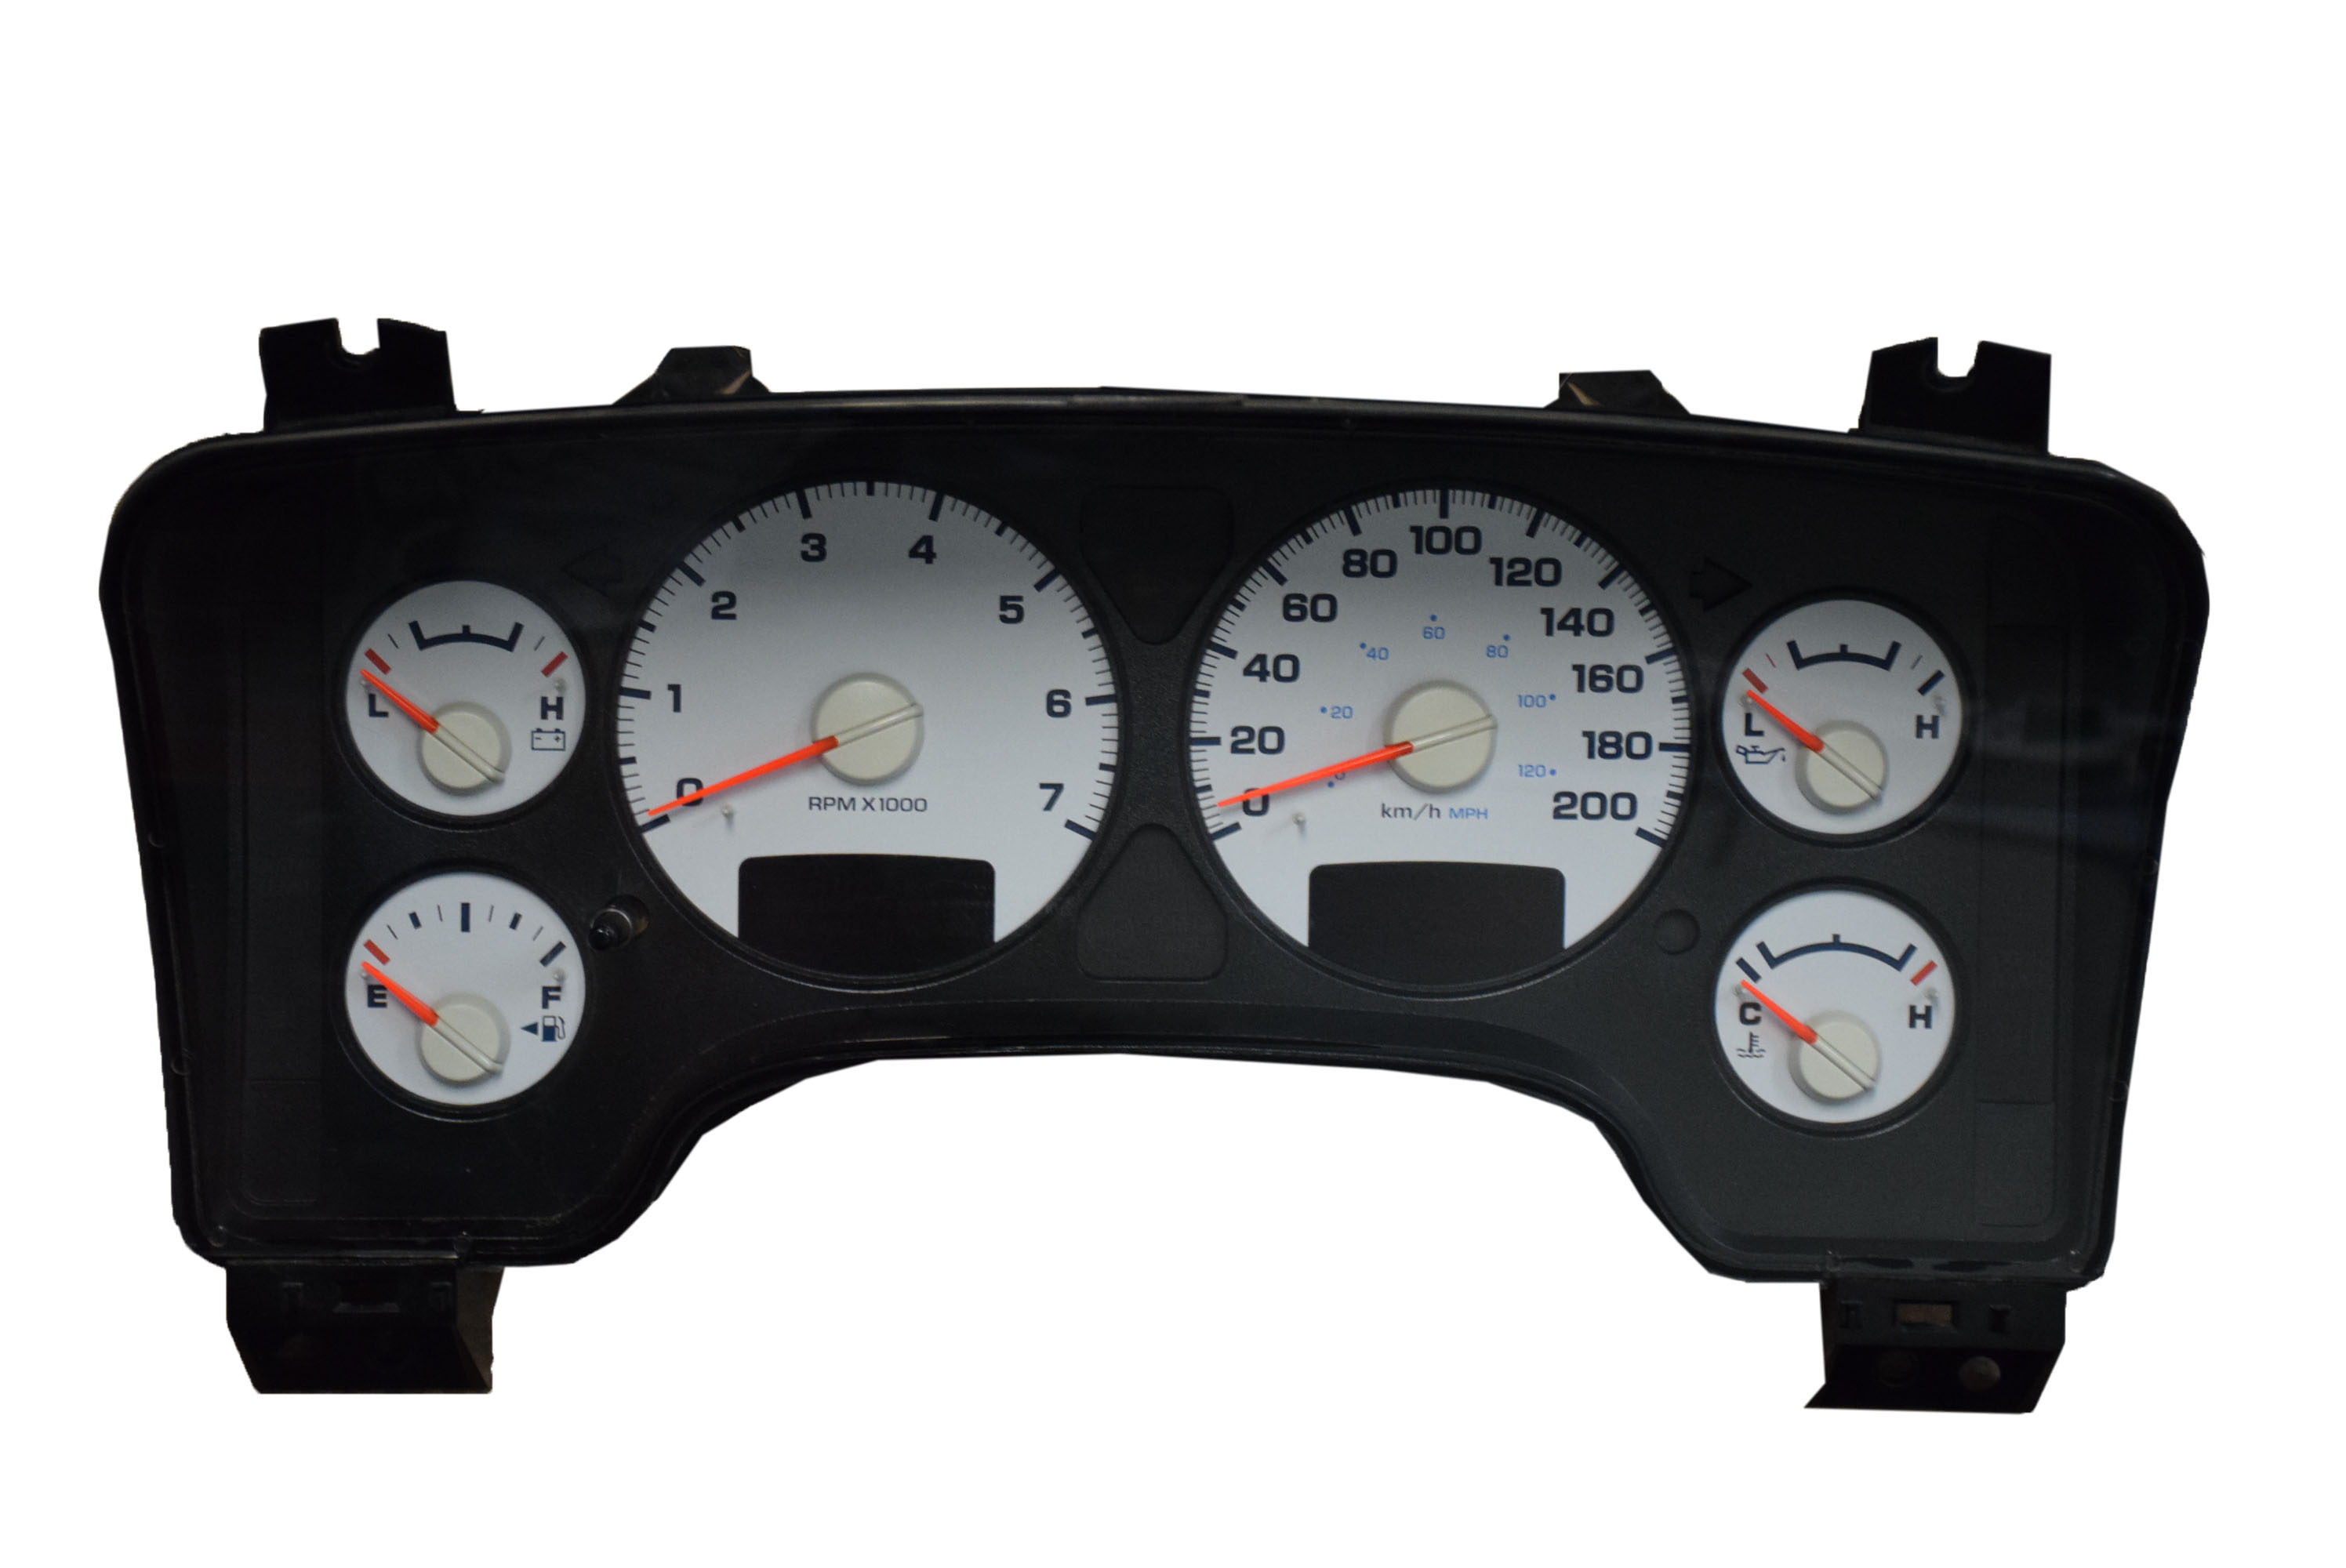 2003-2005 DODGE RAM INSTRUMENT CLUSTER GAUGES DO NOT WORK PROPERLY OR AT  ALL, STICKY GAUGES